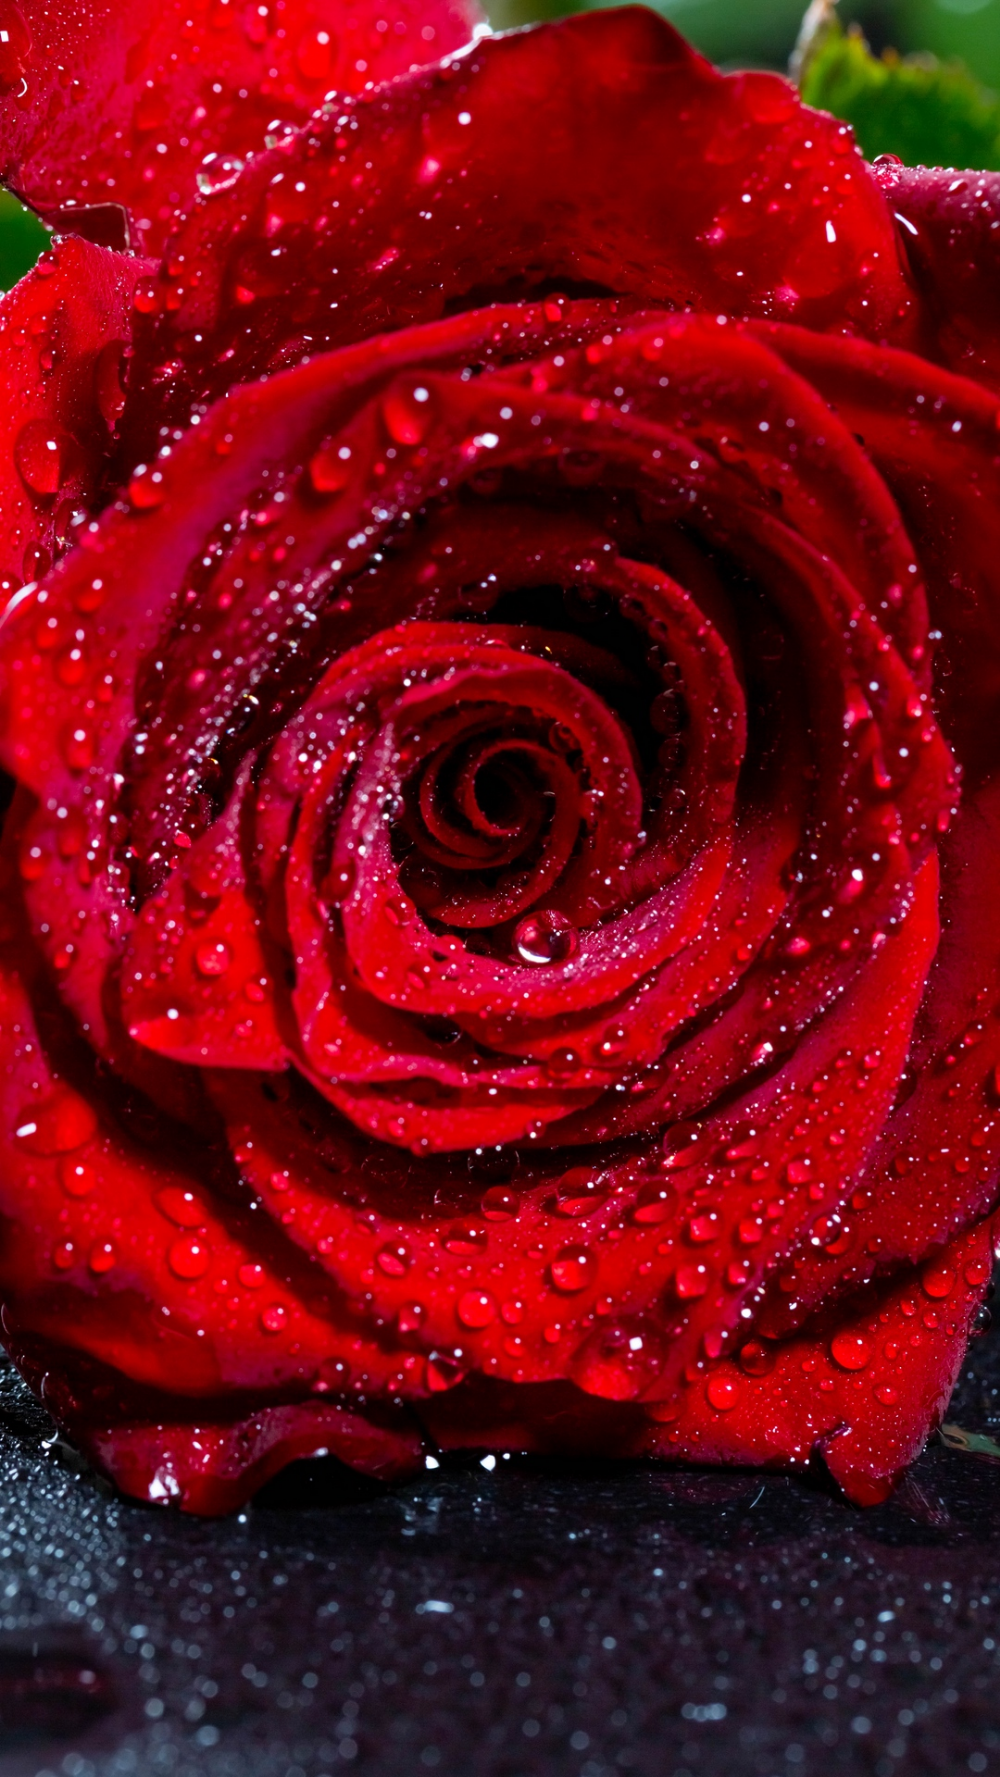 Download Wallpaper 1080x1920 Rose Bud Drops Red Flower Wet Samsung Galaxy S4 S5 Note In 2020 Red Flower Wallpaper Flower Iphone Wallpaper Rose Flower Wallpaper